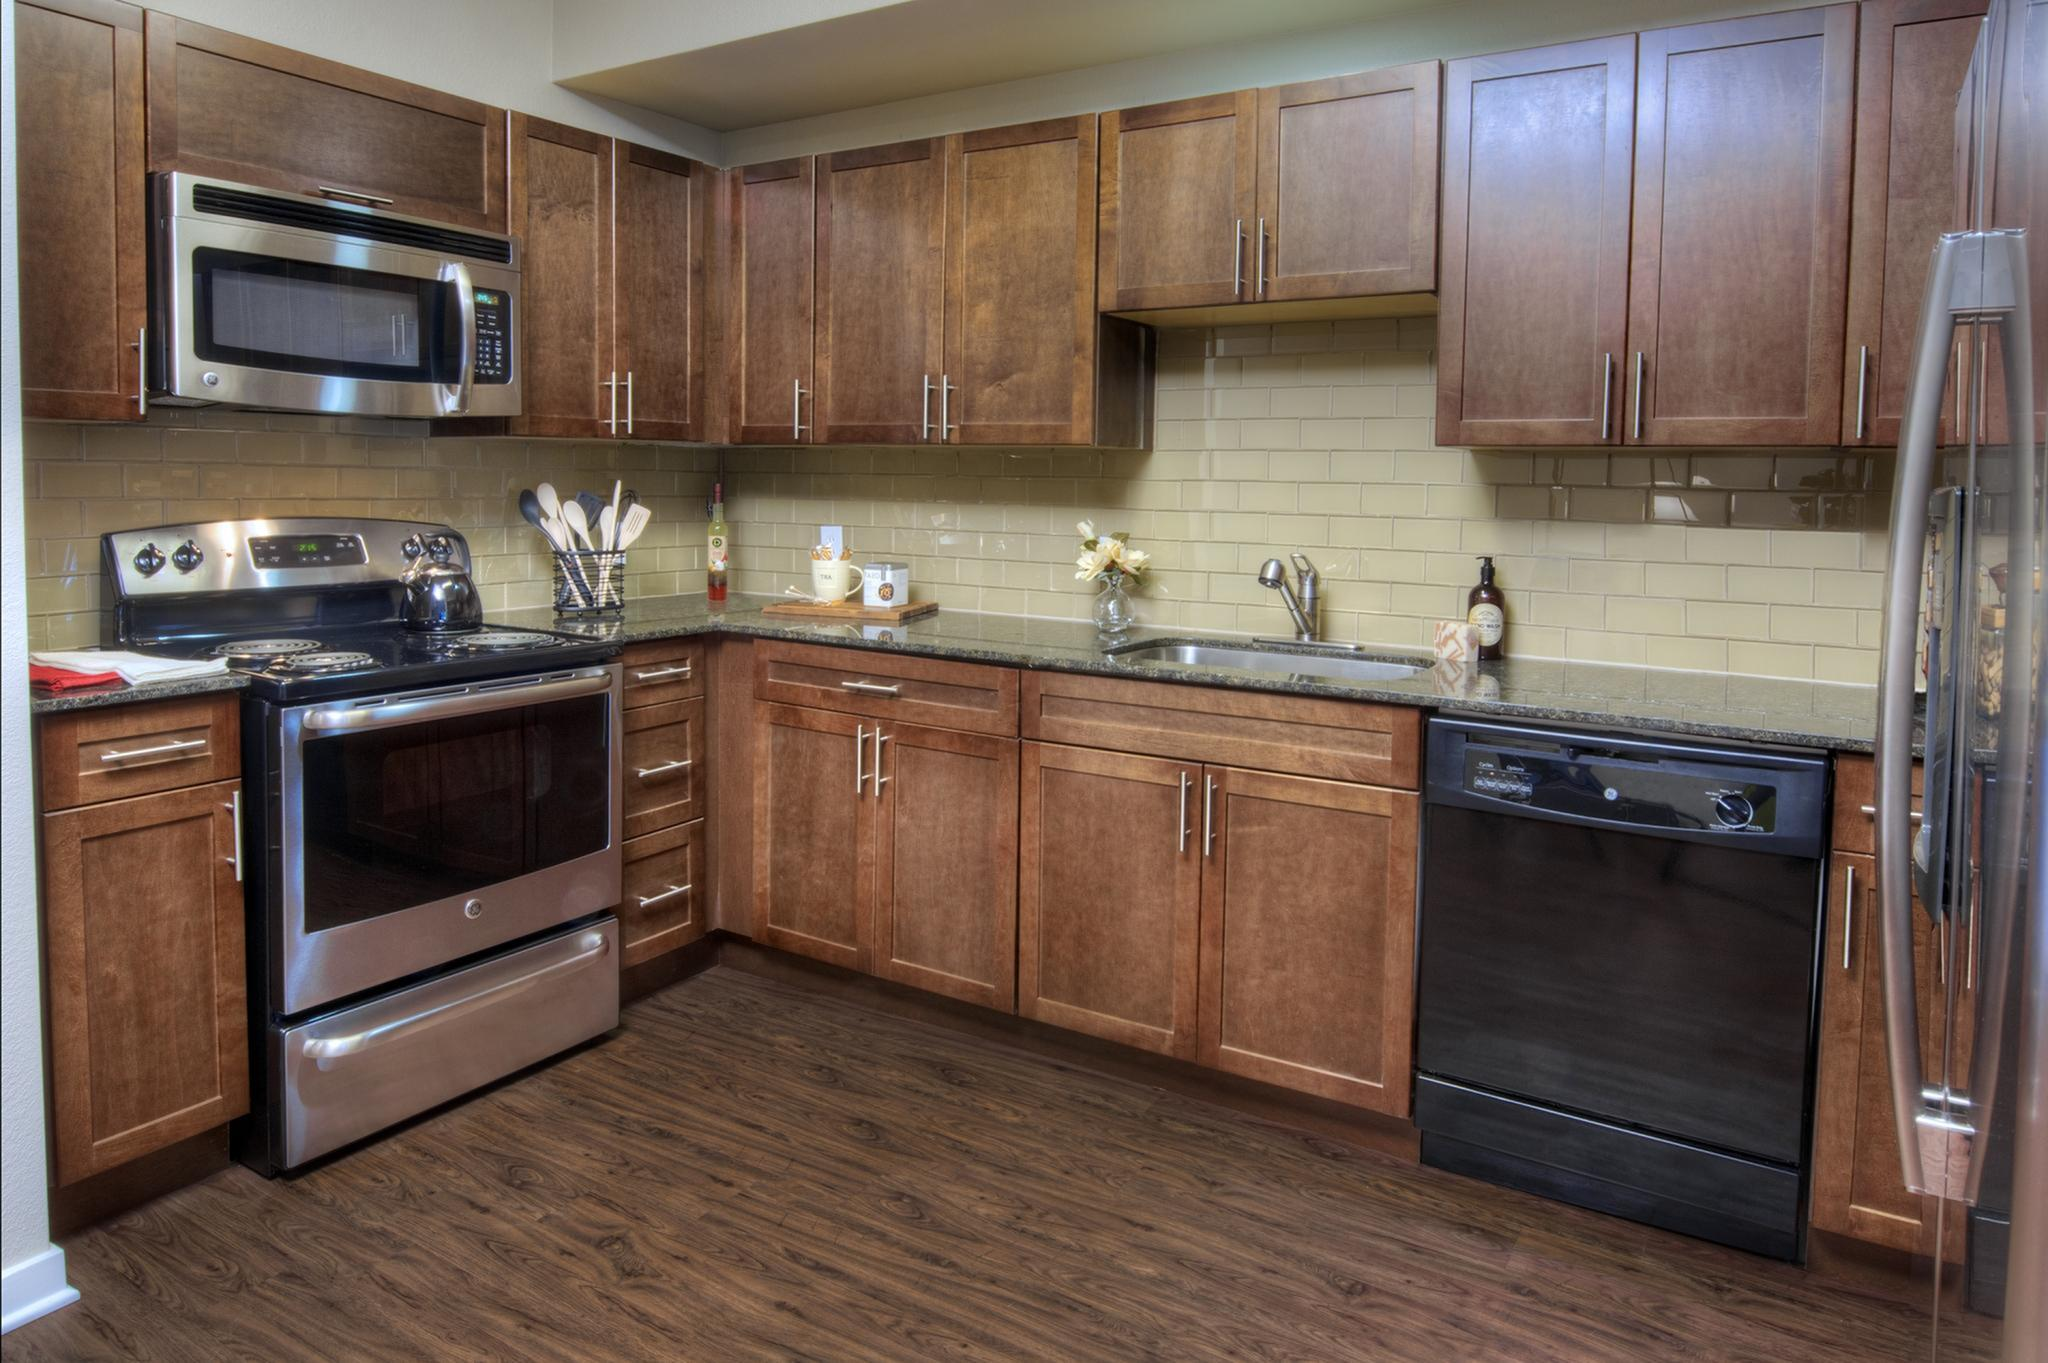 Image of Fully Equipped Kitchen for Uptown Broadway